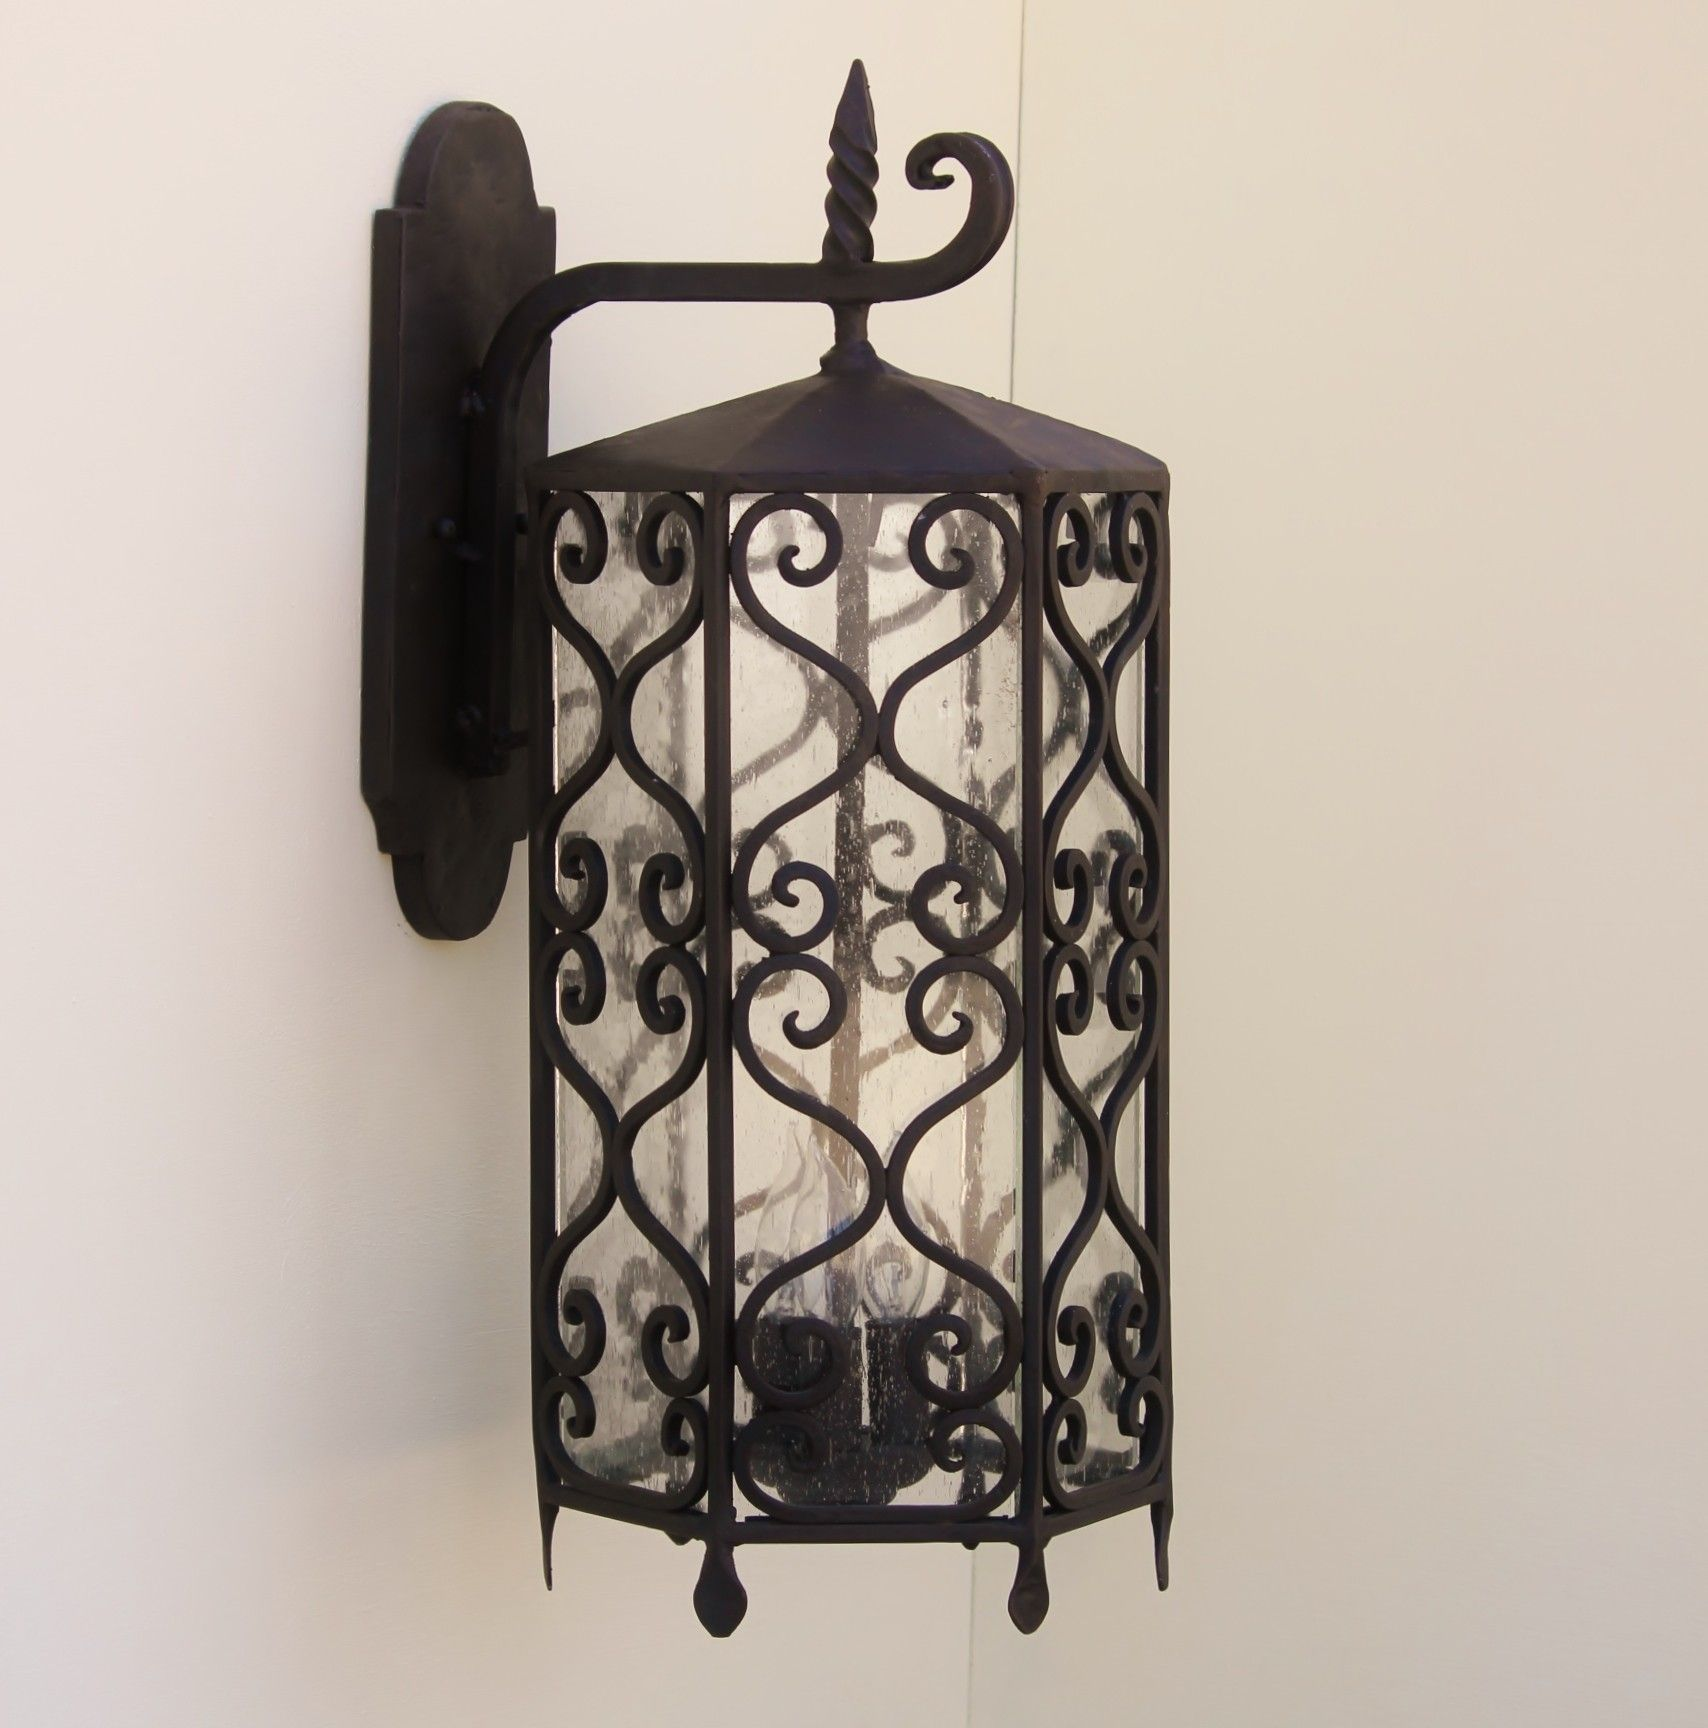 Spanish revival outdoor lighting fixturer wrought iron spanish revival outdoor lighting fixturer wrought iron aloadofball